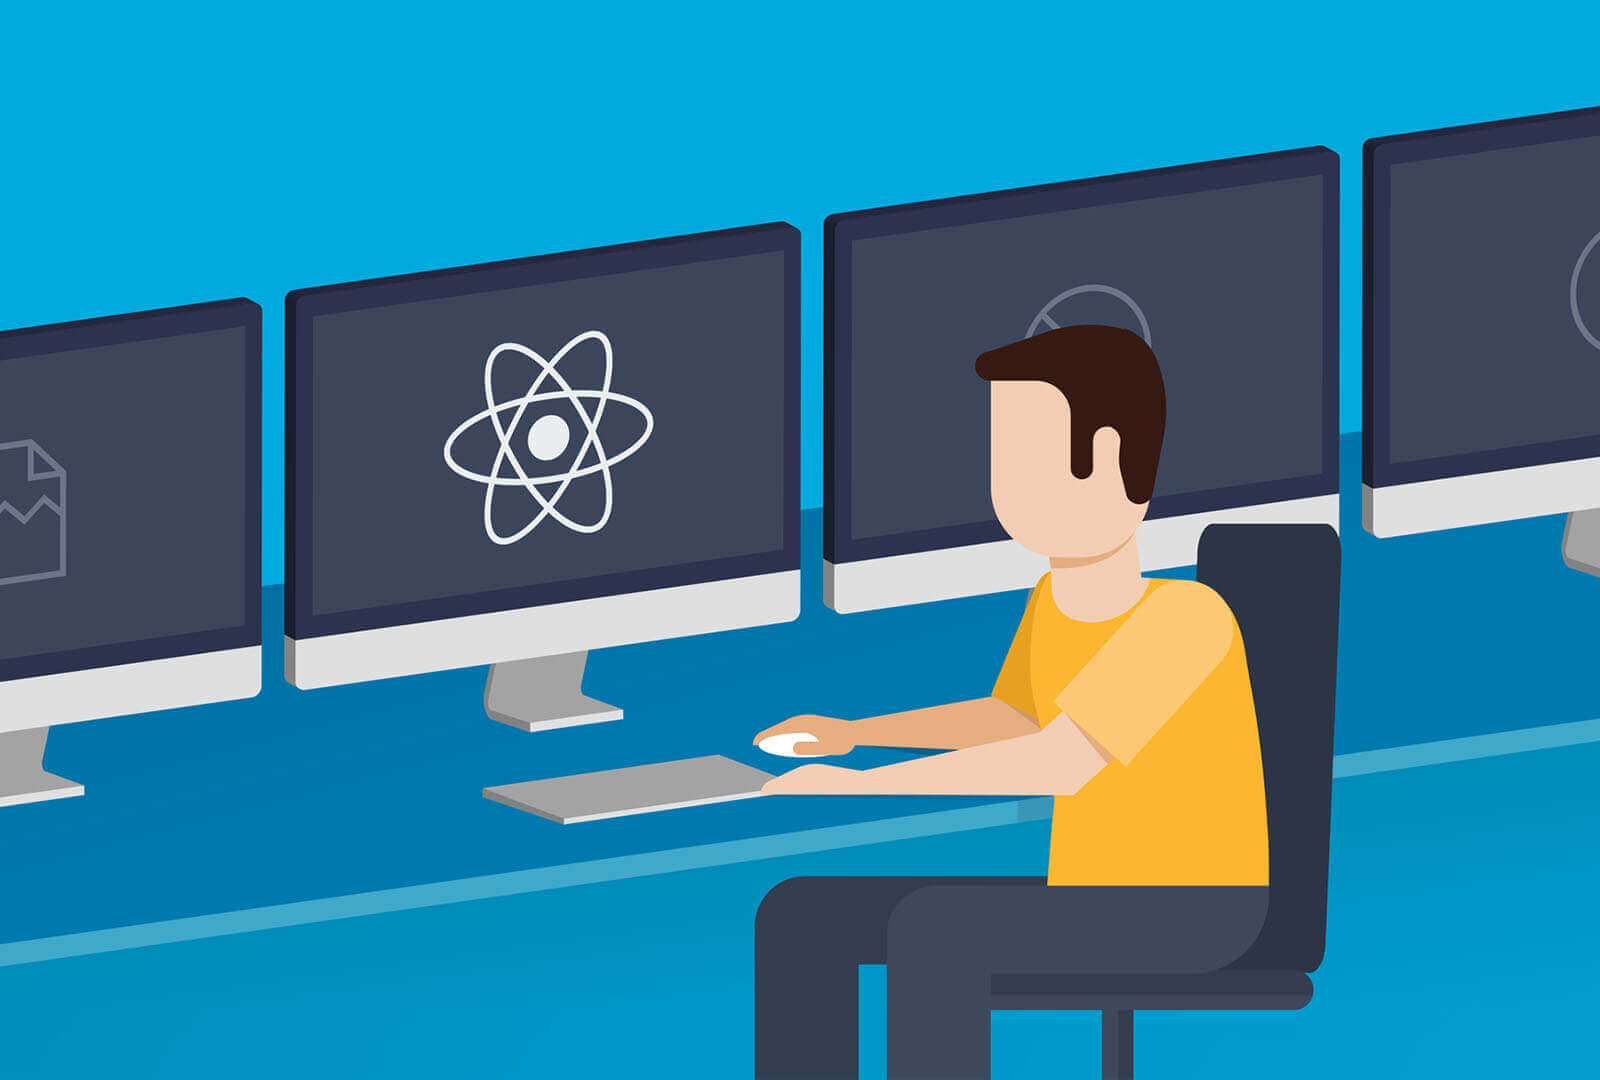 ReactJS Framework for Web Application Development